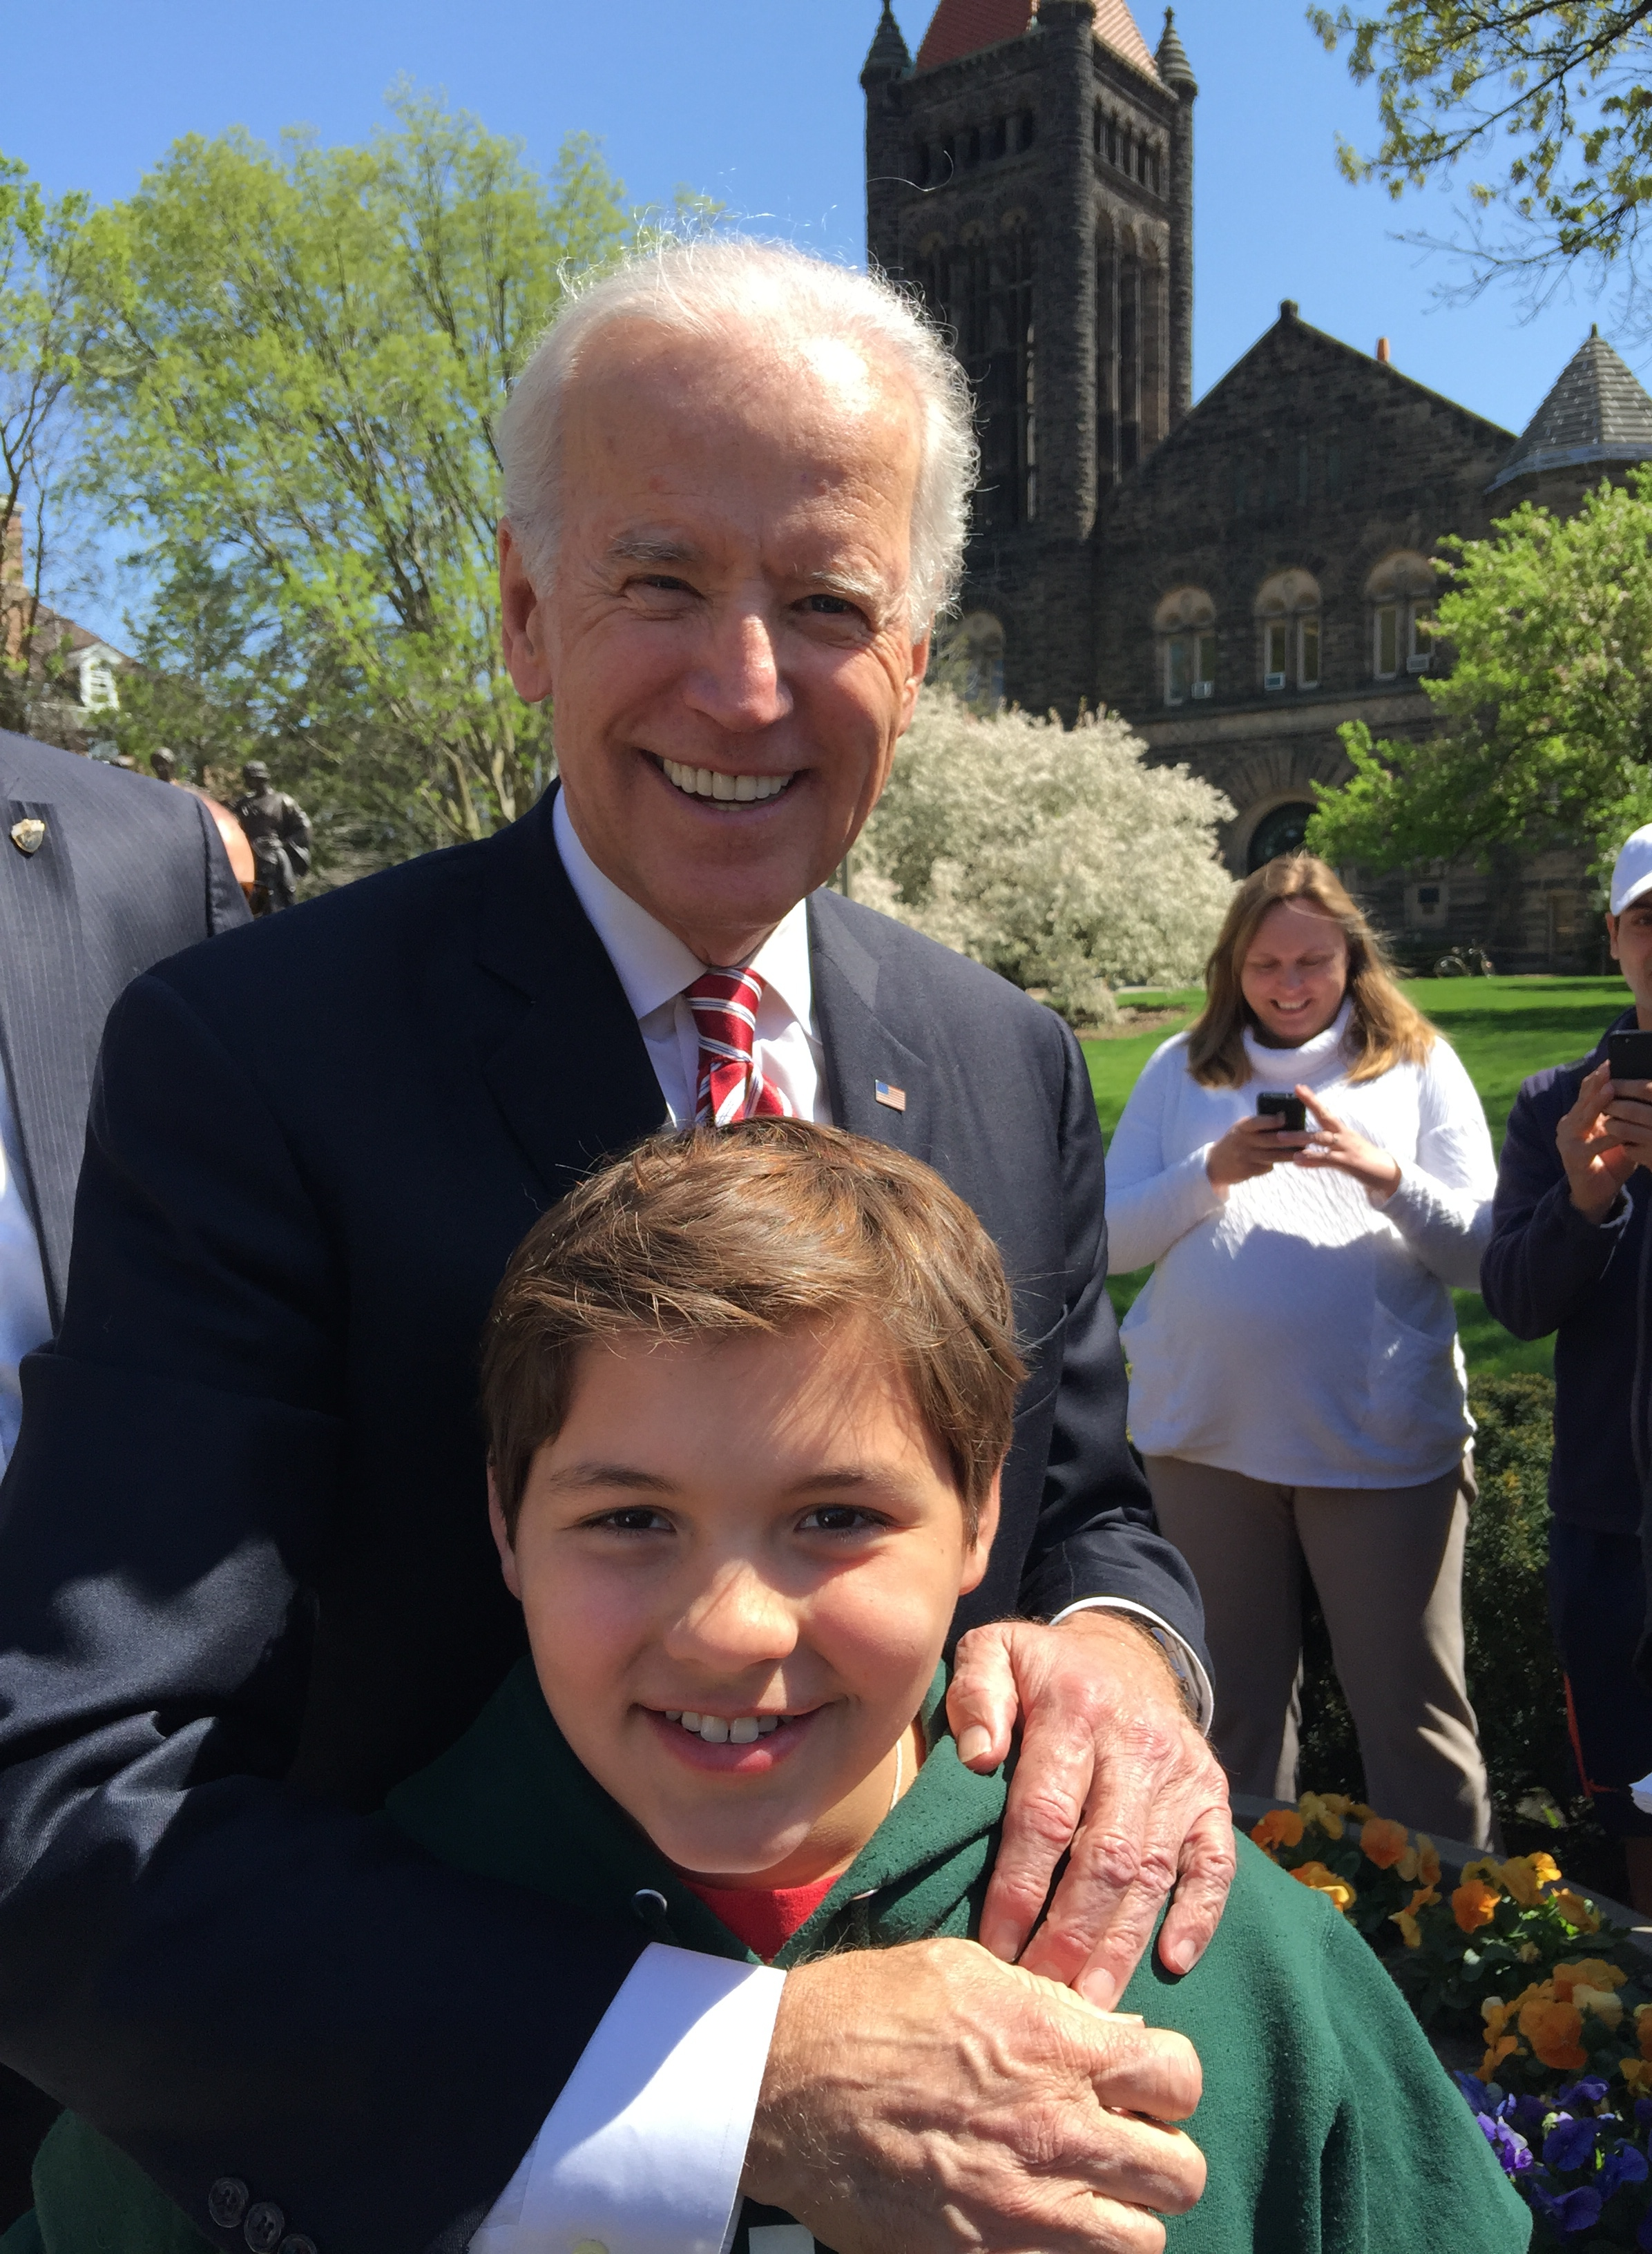 Meeting the Vice President: A Serendipitous Affair